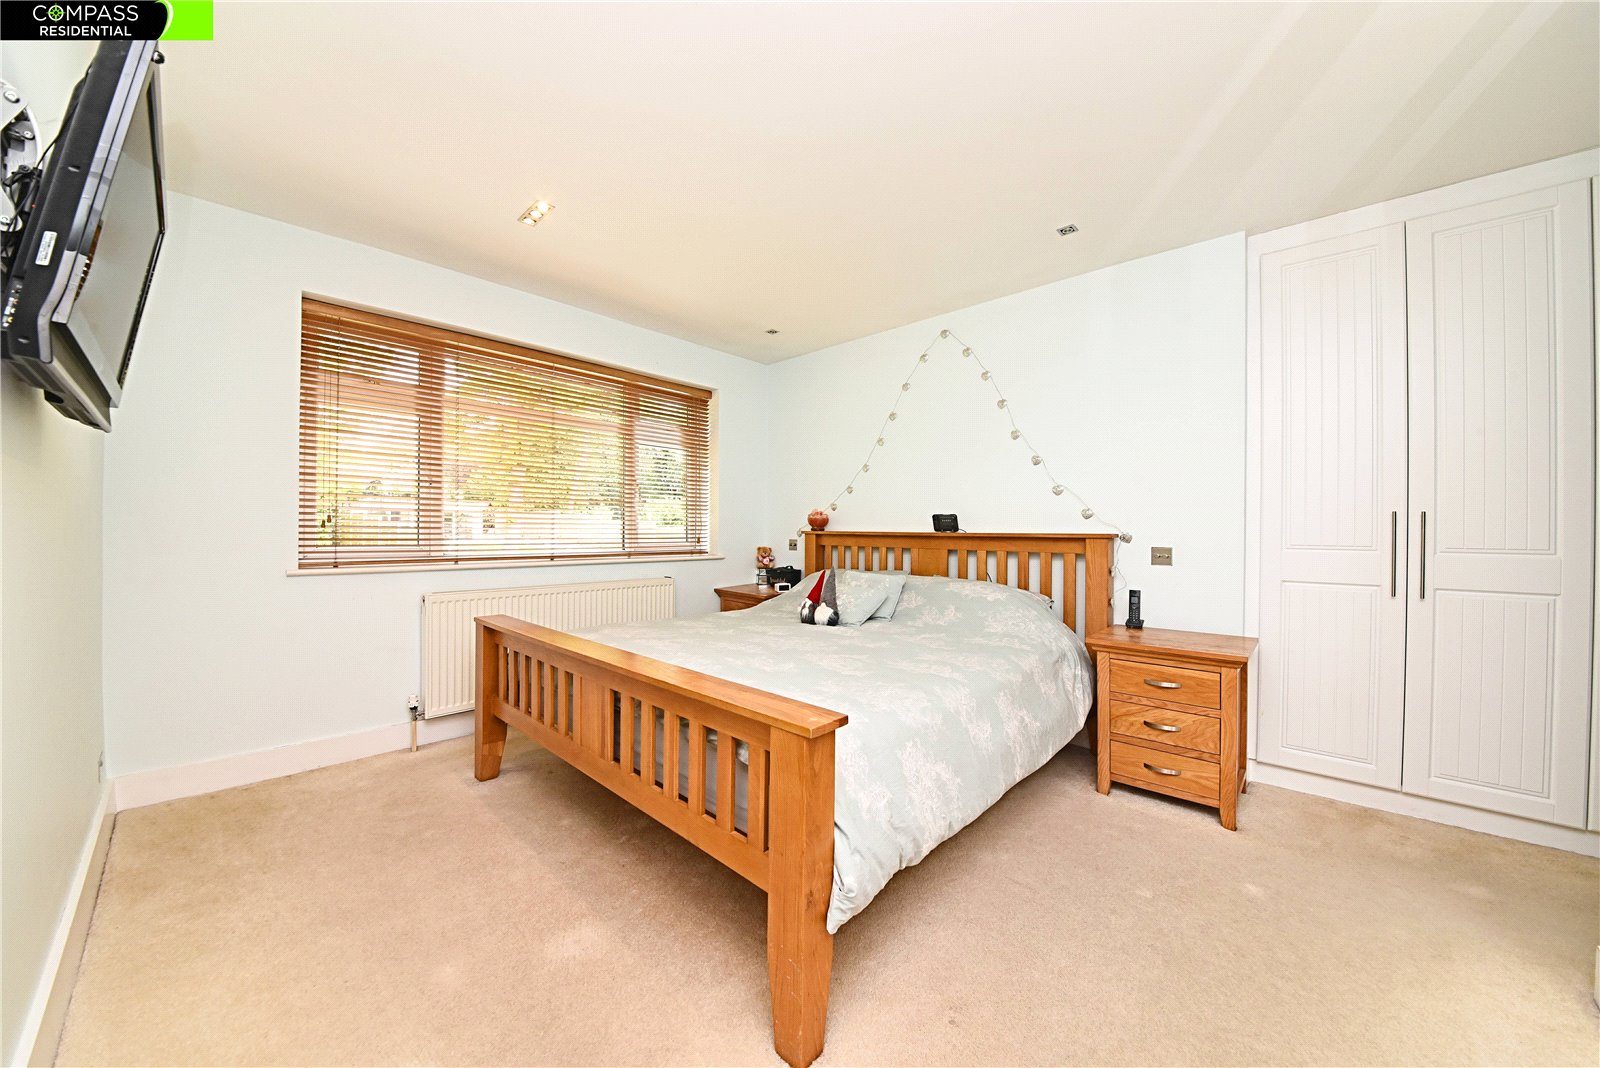 4 bed house for sale in Stanmore, HA7 3AZ 9